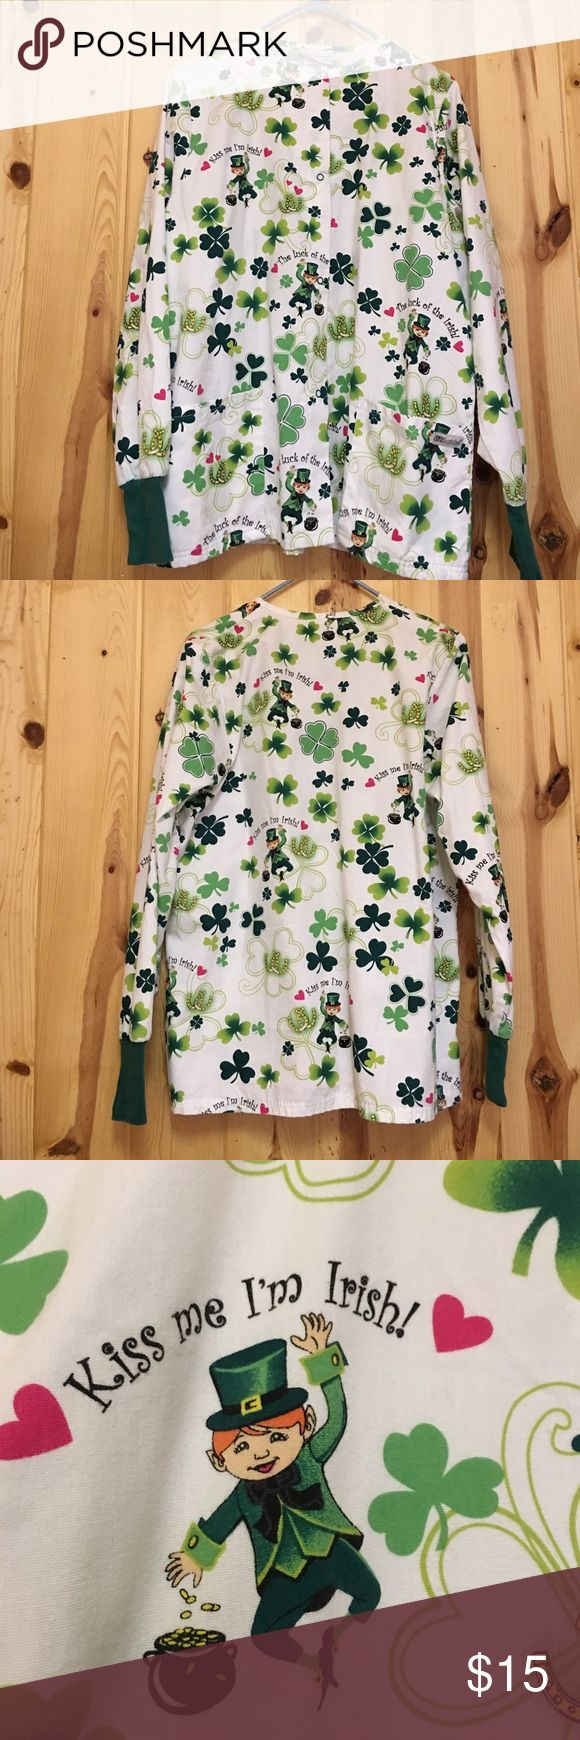 Kiss Me I'm Irish 🍀 Scrub Jacket by UA Scrubs Like New has 2 Front Pockets and snaps up the front Size tag is gone but I this is is a Small Could also fit a medium person Exclusively From My Closet Offers Welcome UA Scrubs Jackets & Coats